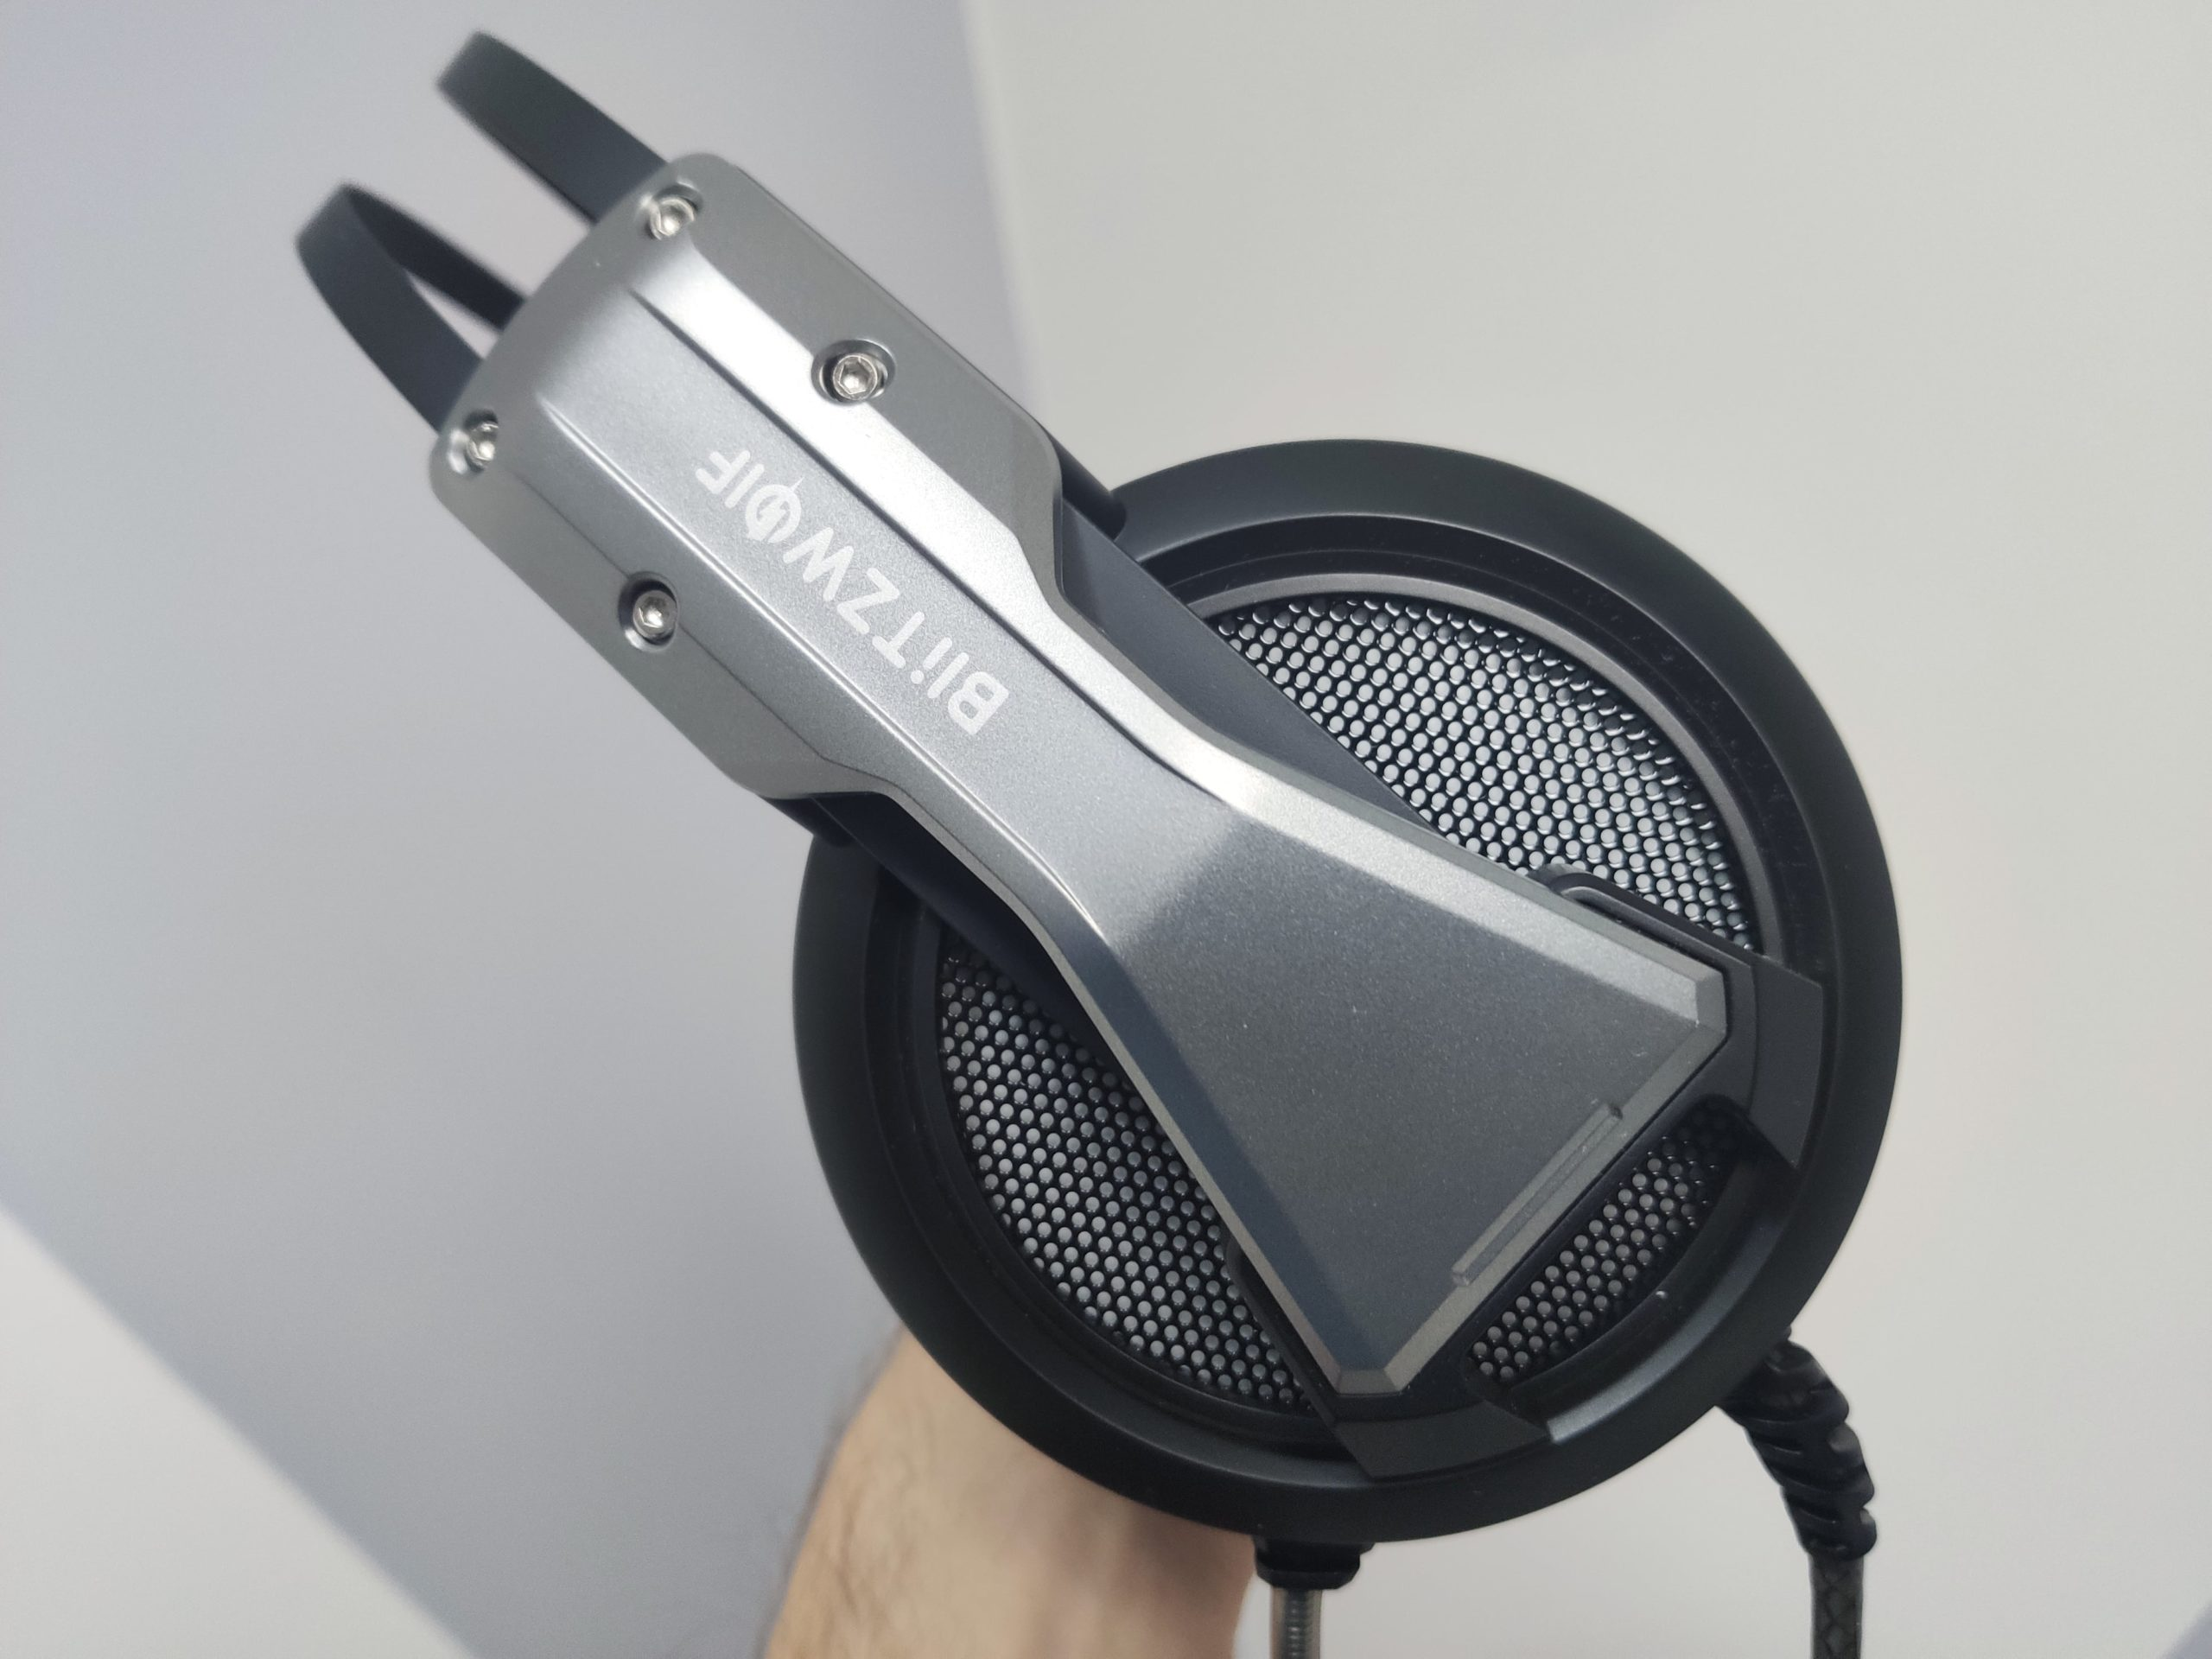 The Blitzwolf BW-GH1 Headset Review!